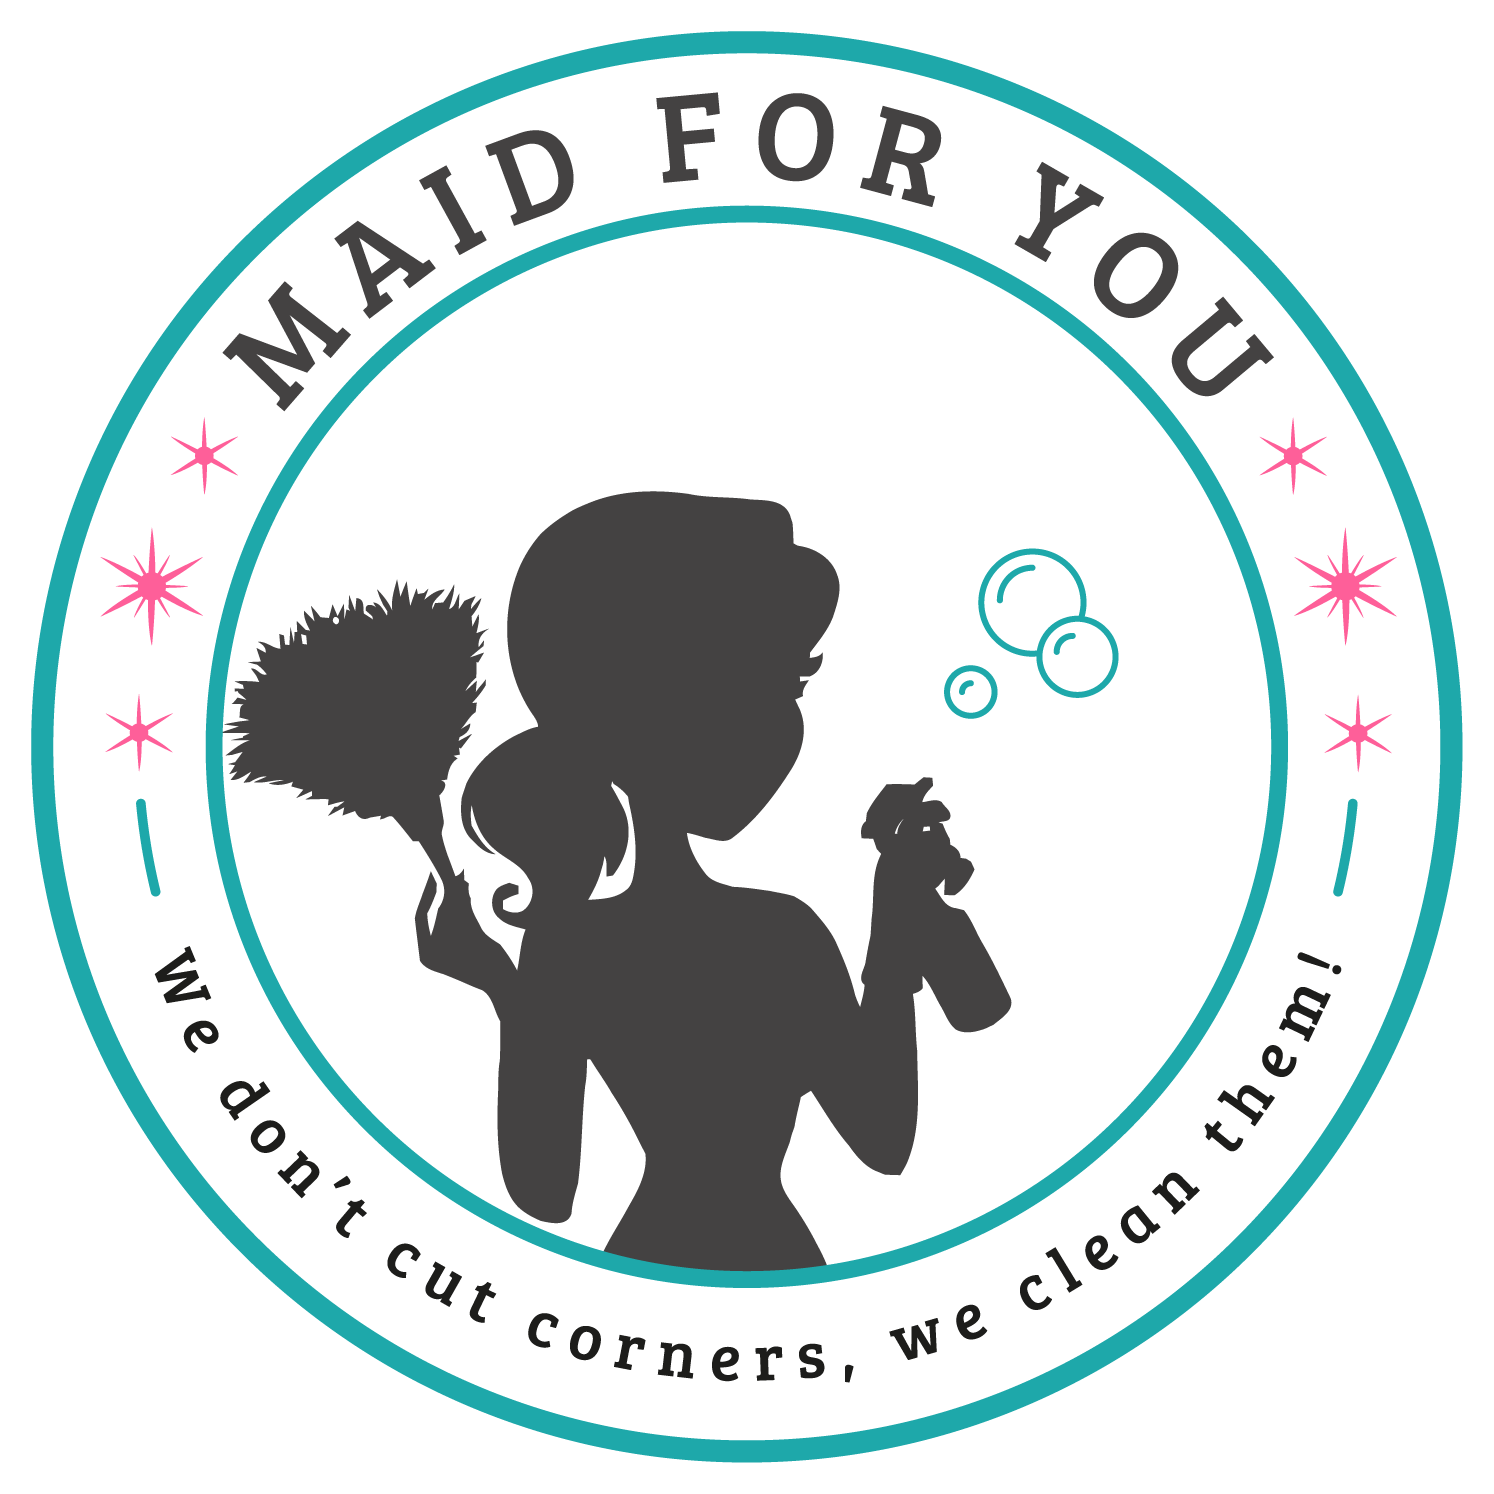 Maid For You Paducah